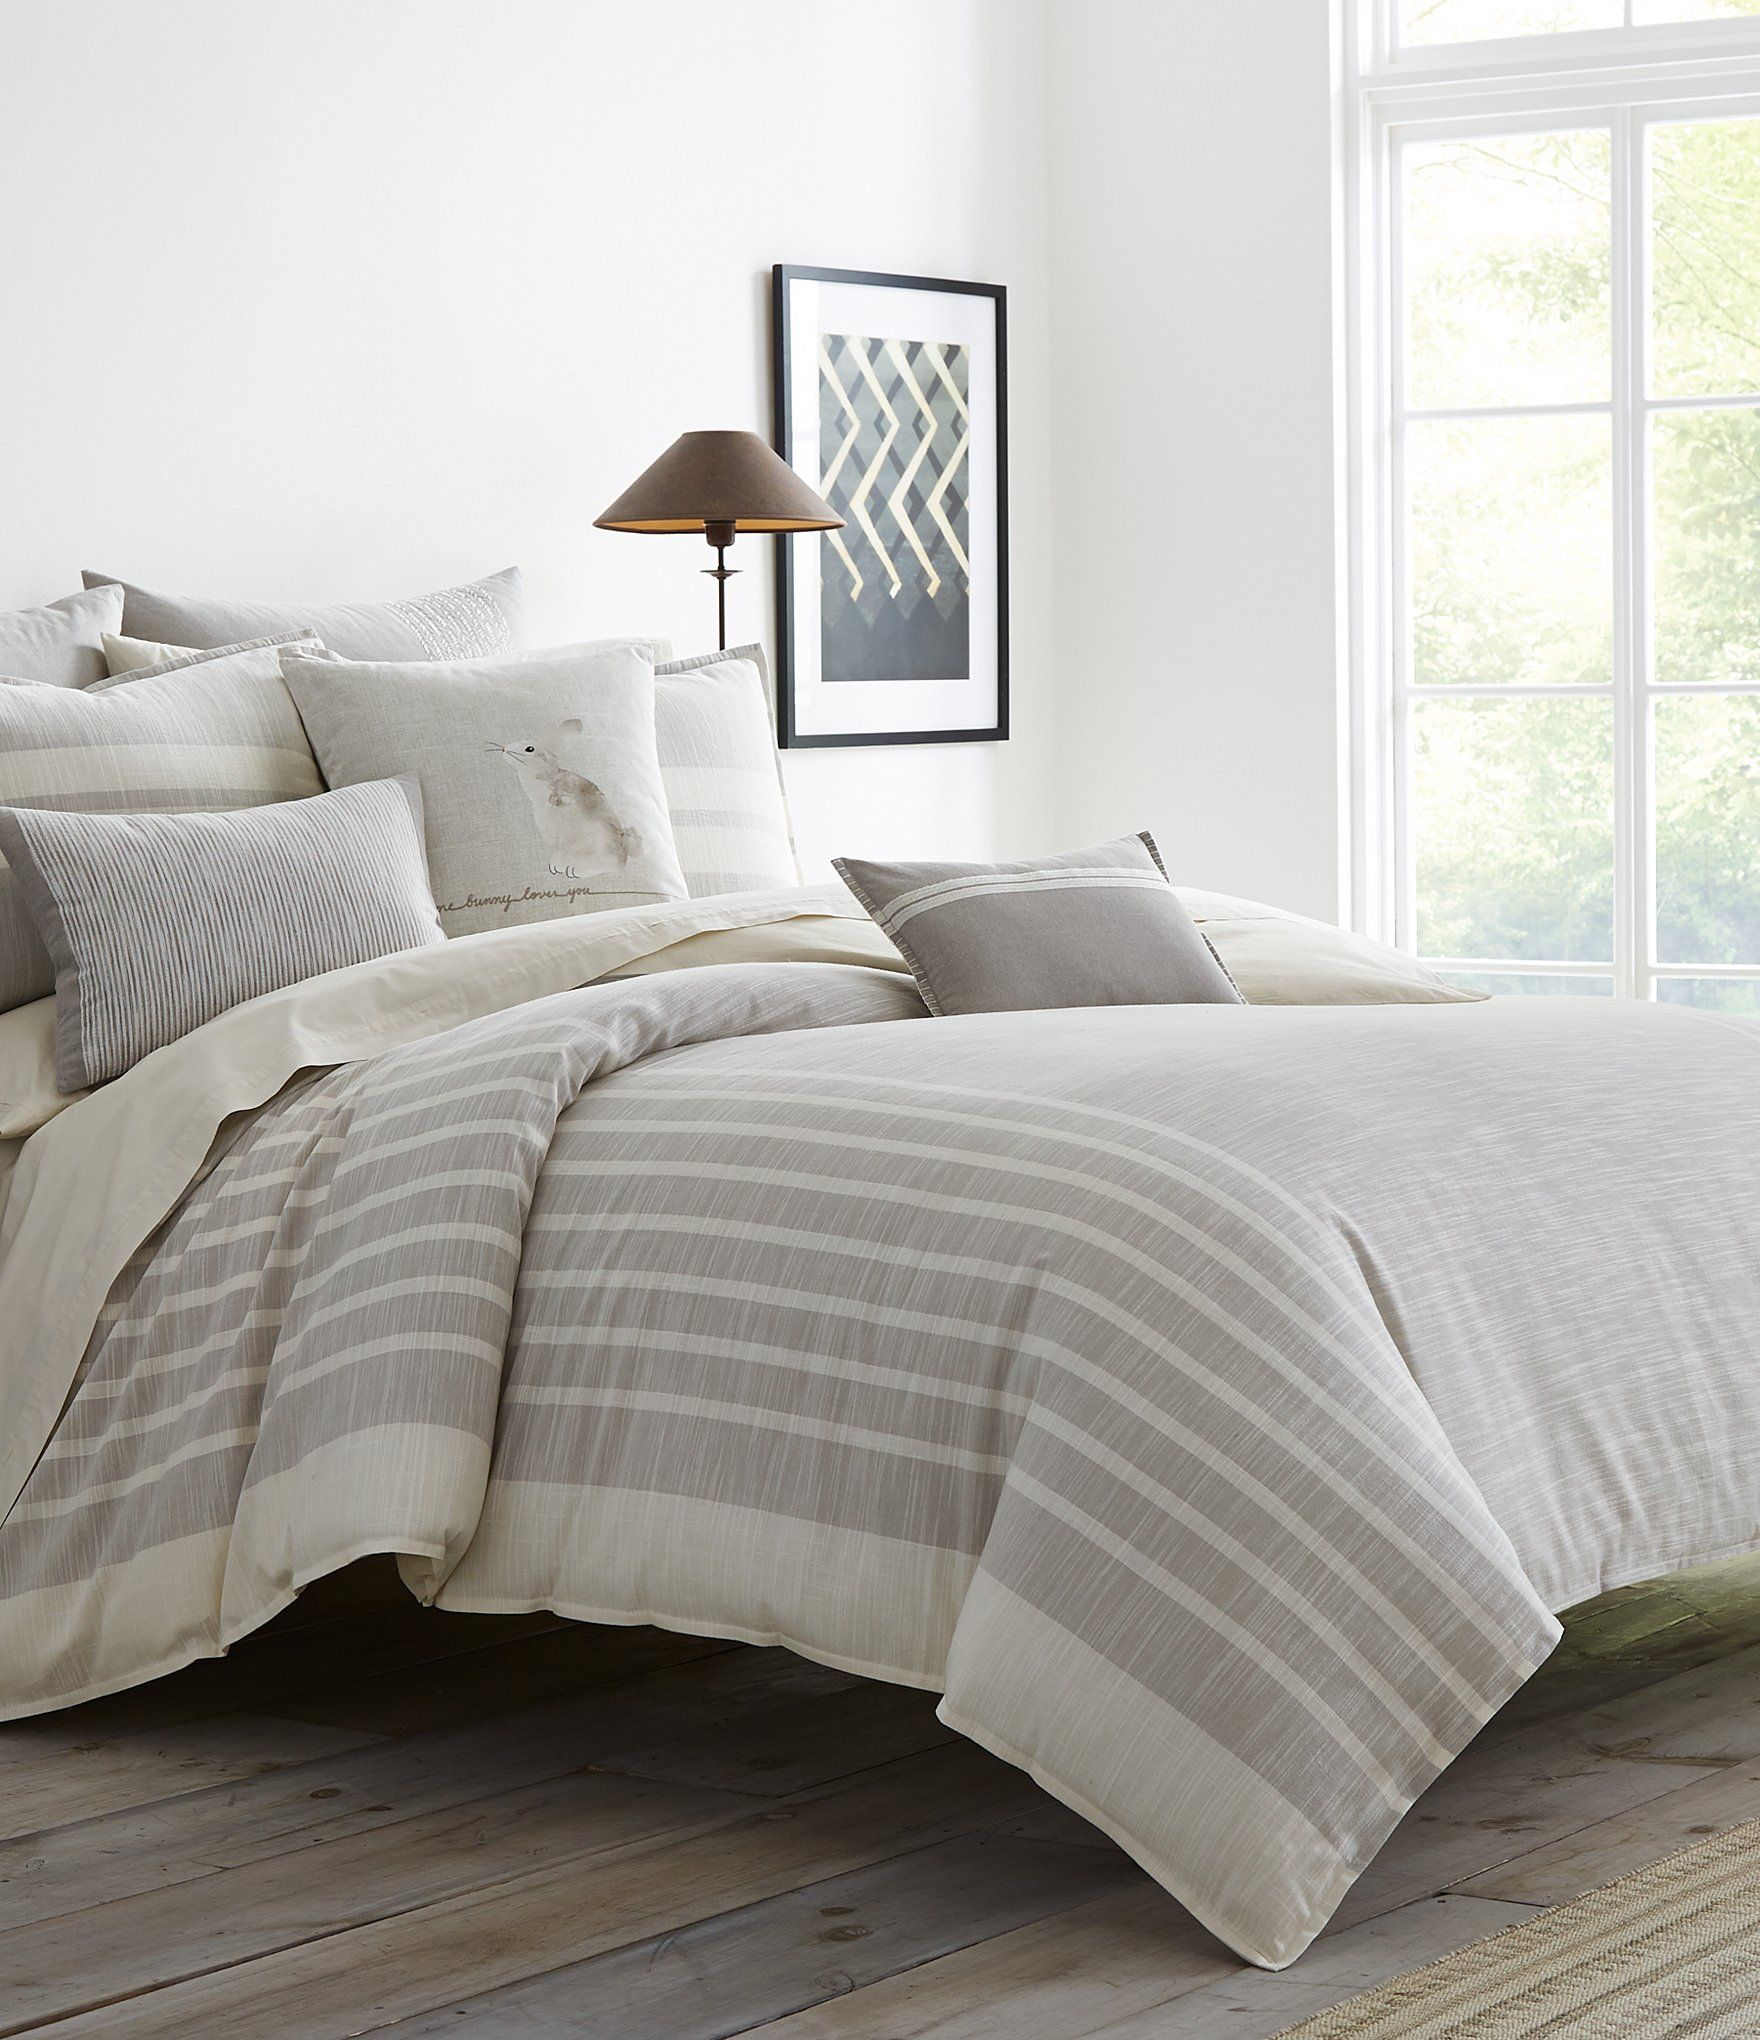 Ed Ellen Degeneres Claremont Duvet Cover In 2019 Home